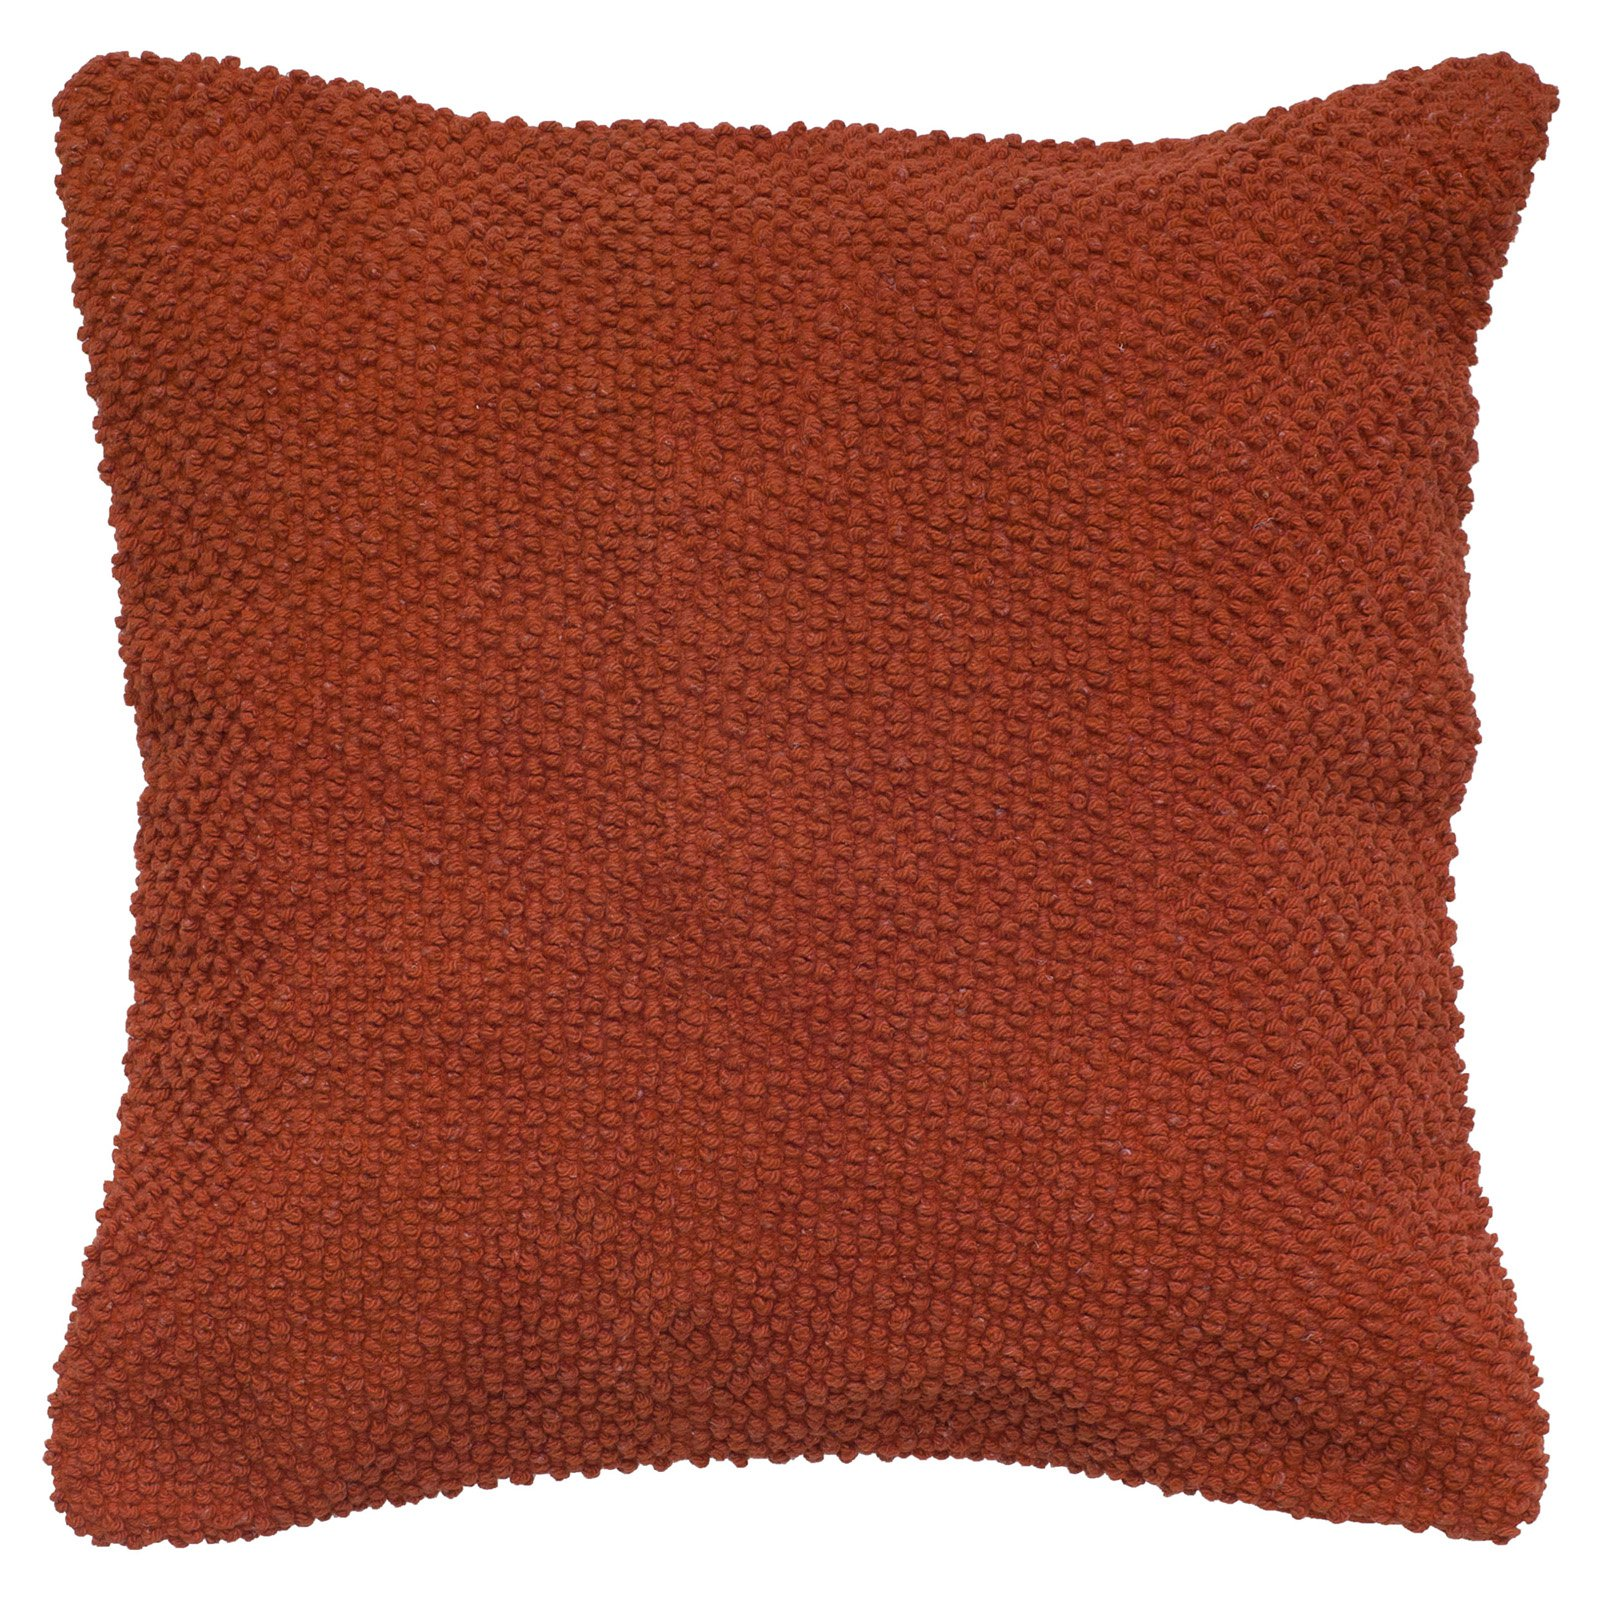 "Rizzy Home solid nubby textured20"" x 20""Cotton decorative filled pillow"